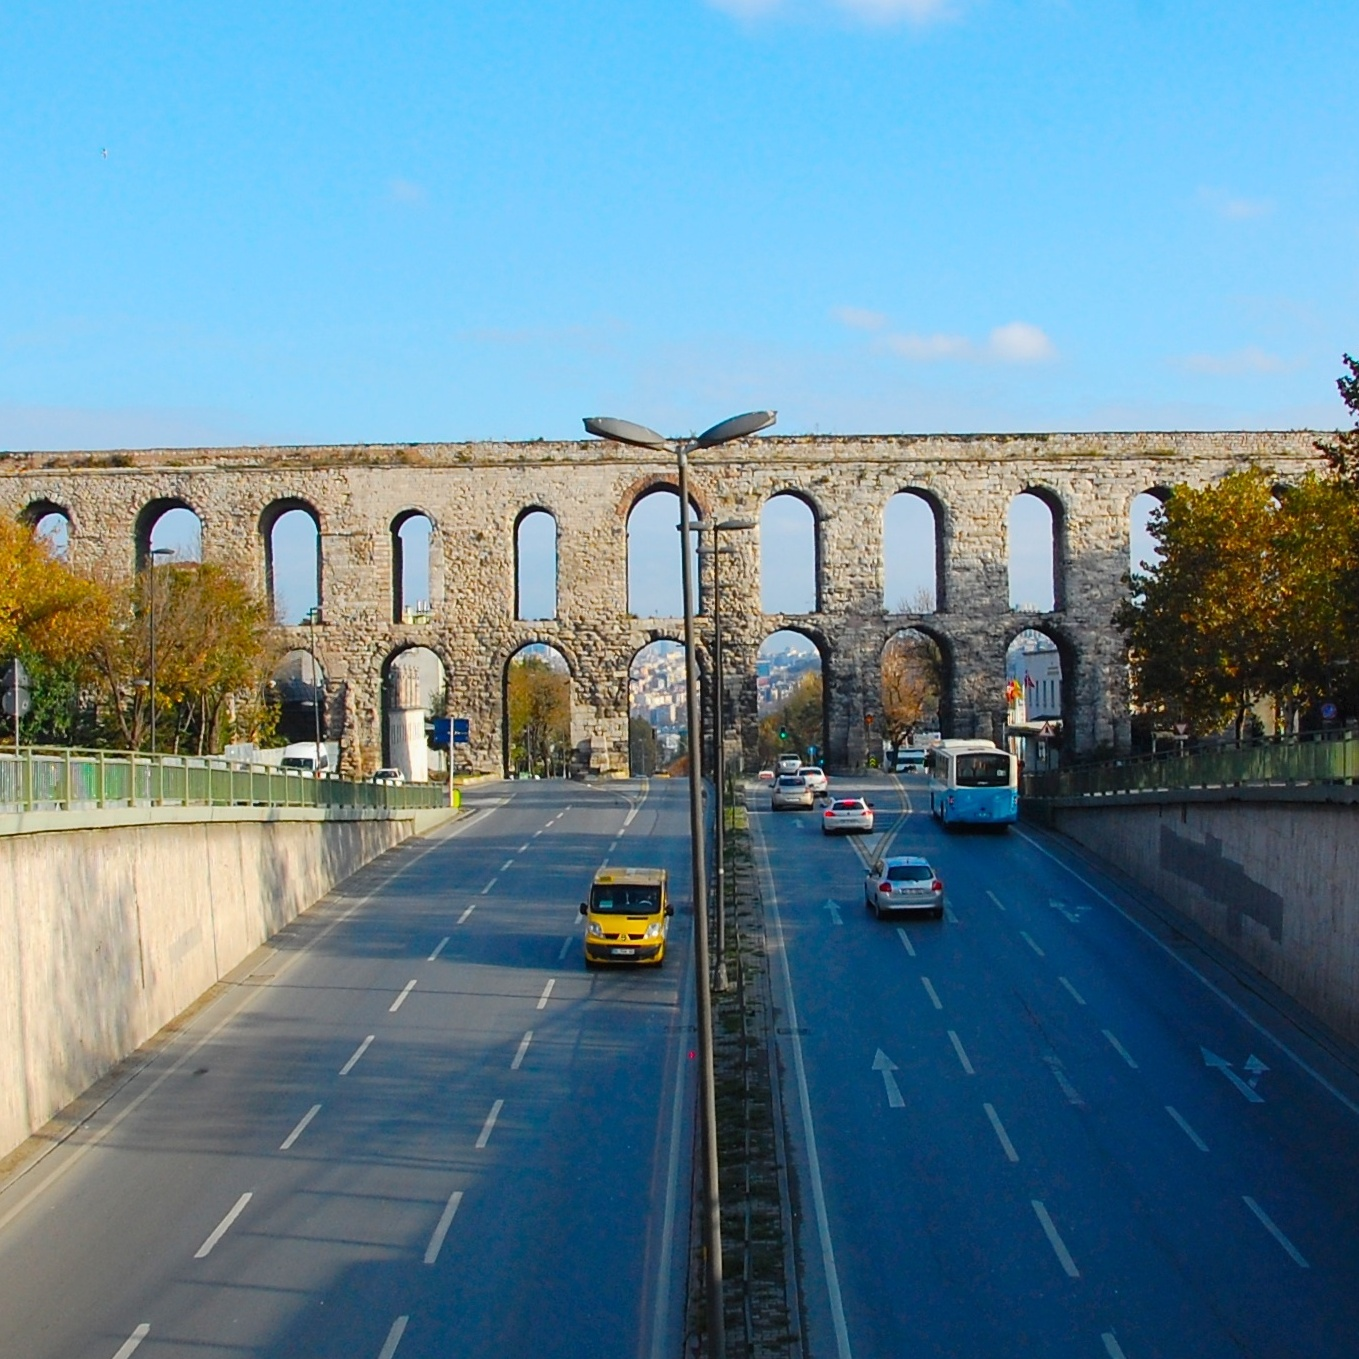 Traffic passes under Istanbul's ancient Valens Aqueduct, which once carried water to the city's royal cisterns.